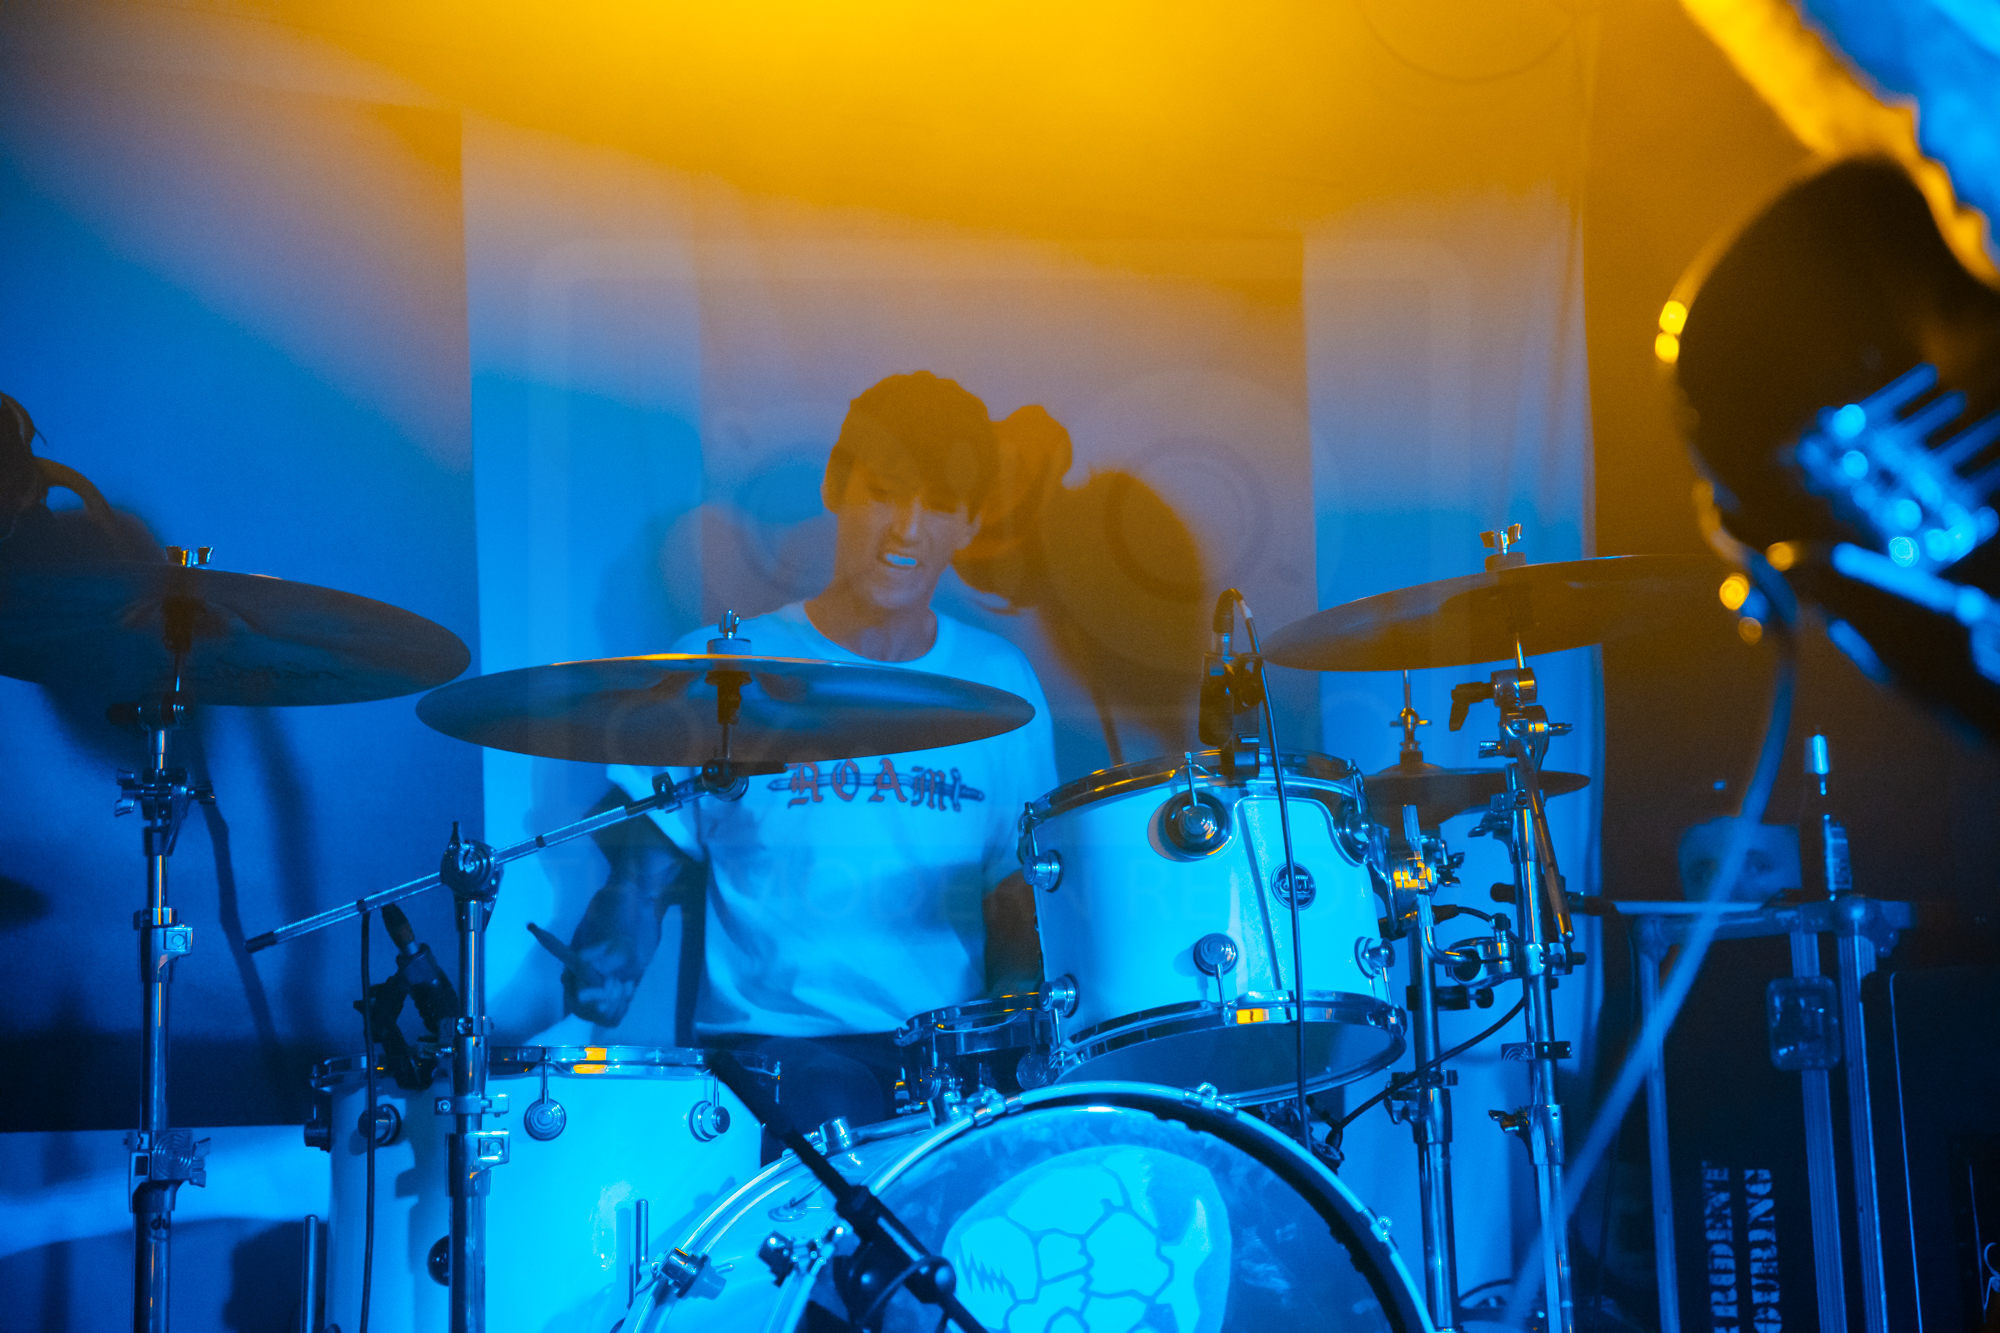 10-WithConfidence-ManchesterAcademy3-26-9-19.jpg